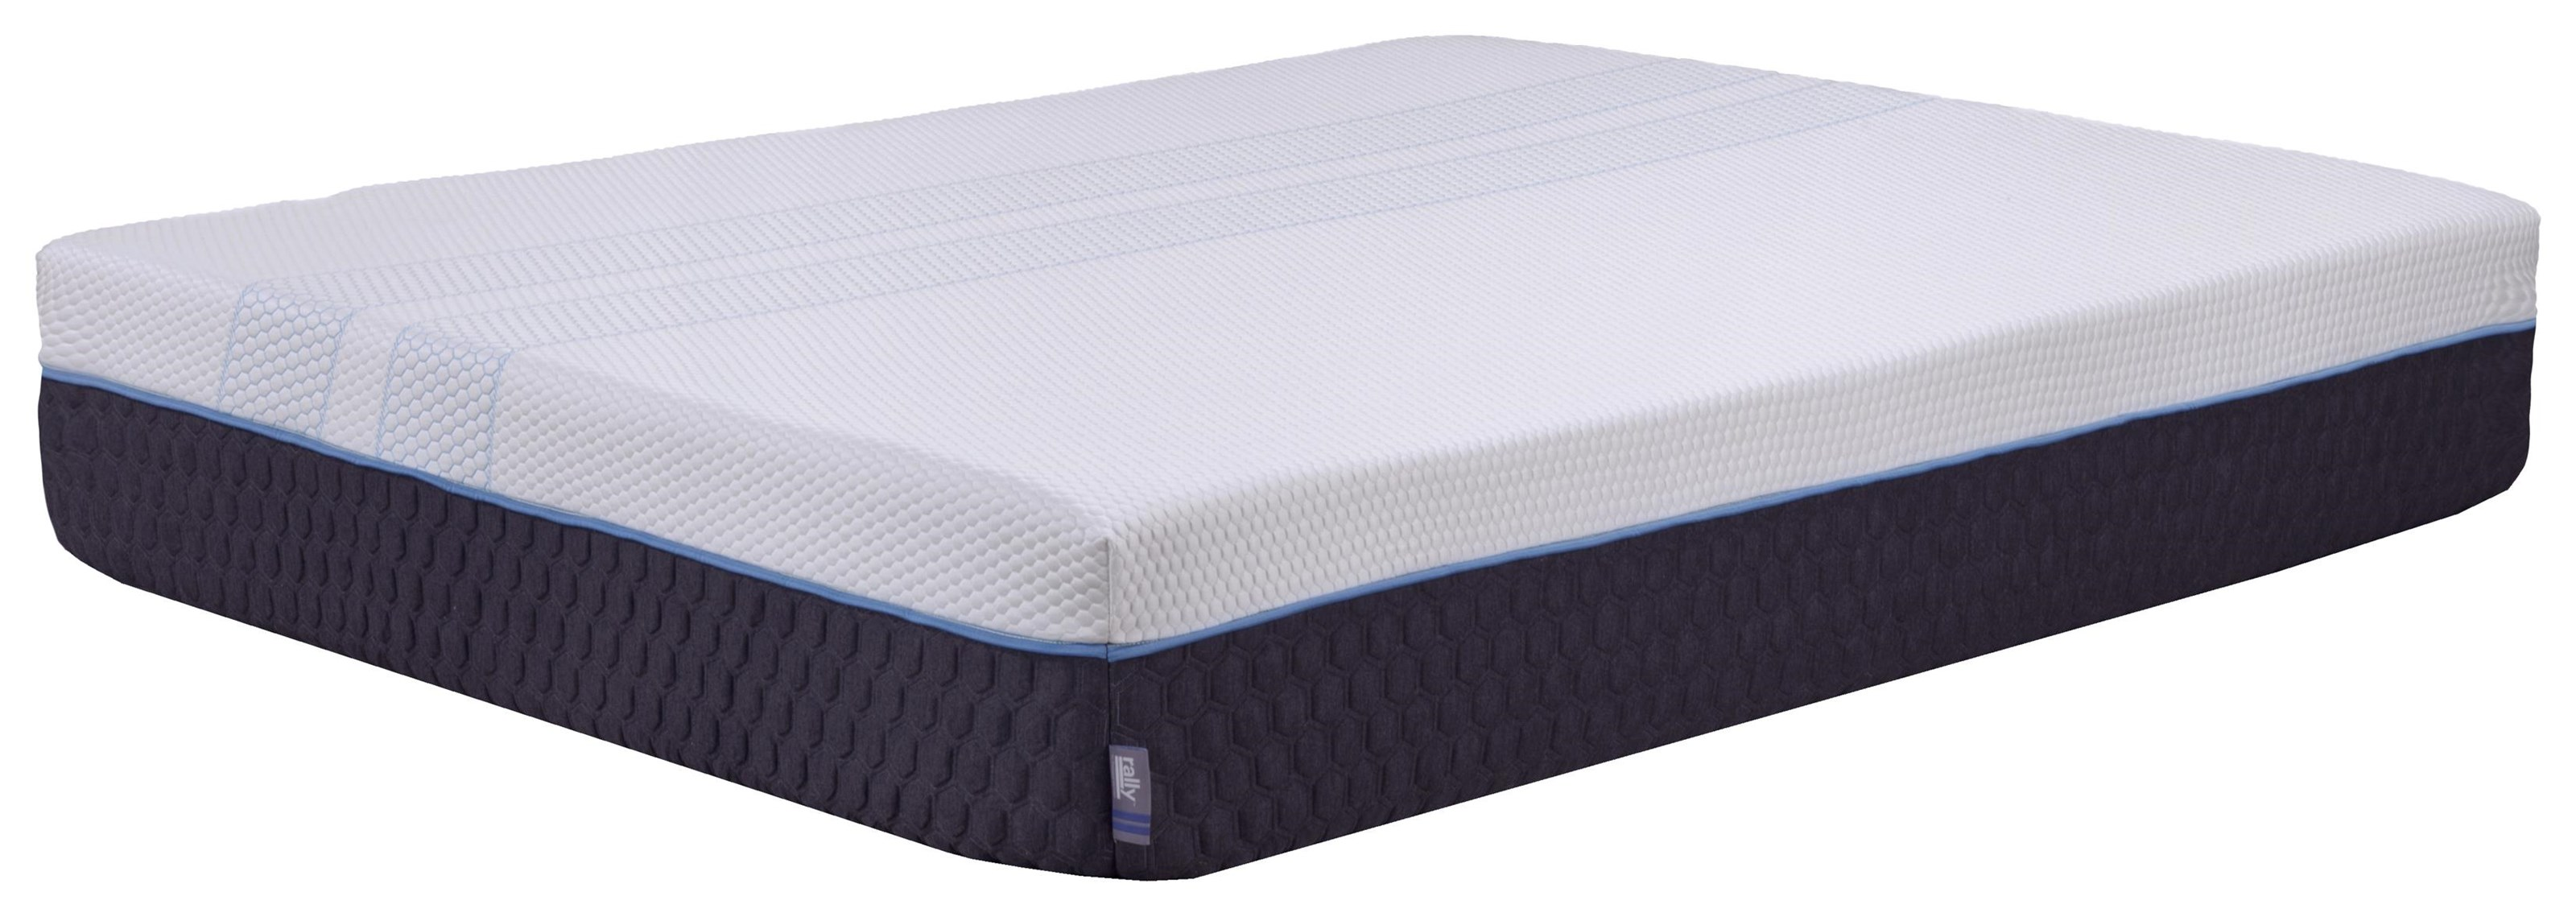 Rally Hybrid Cooling Firm Twin Firm Hybrid Cooling Mattress in a Box by Diamond Mattress at Beck's Furniture